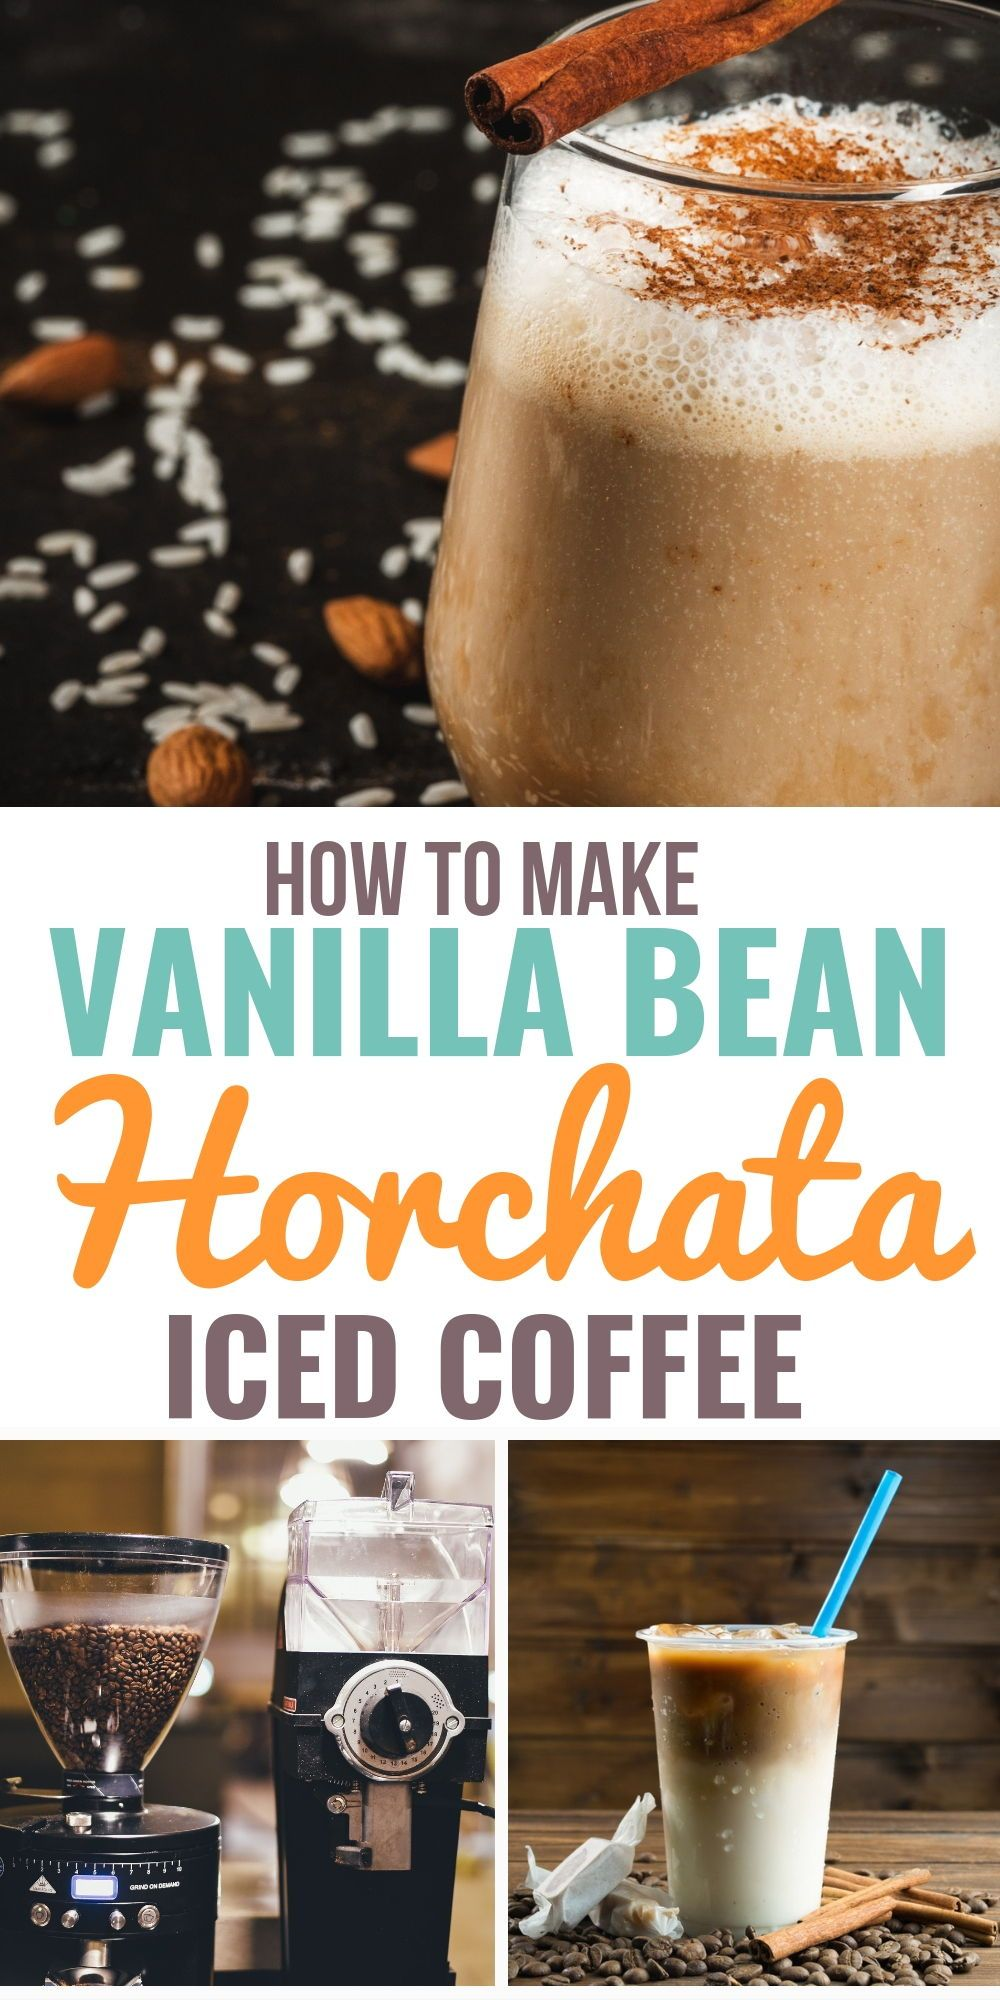 How to make vanilla bean horchata iced coffee horchata